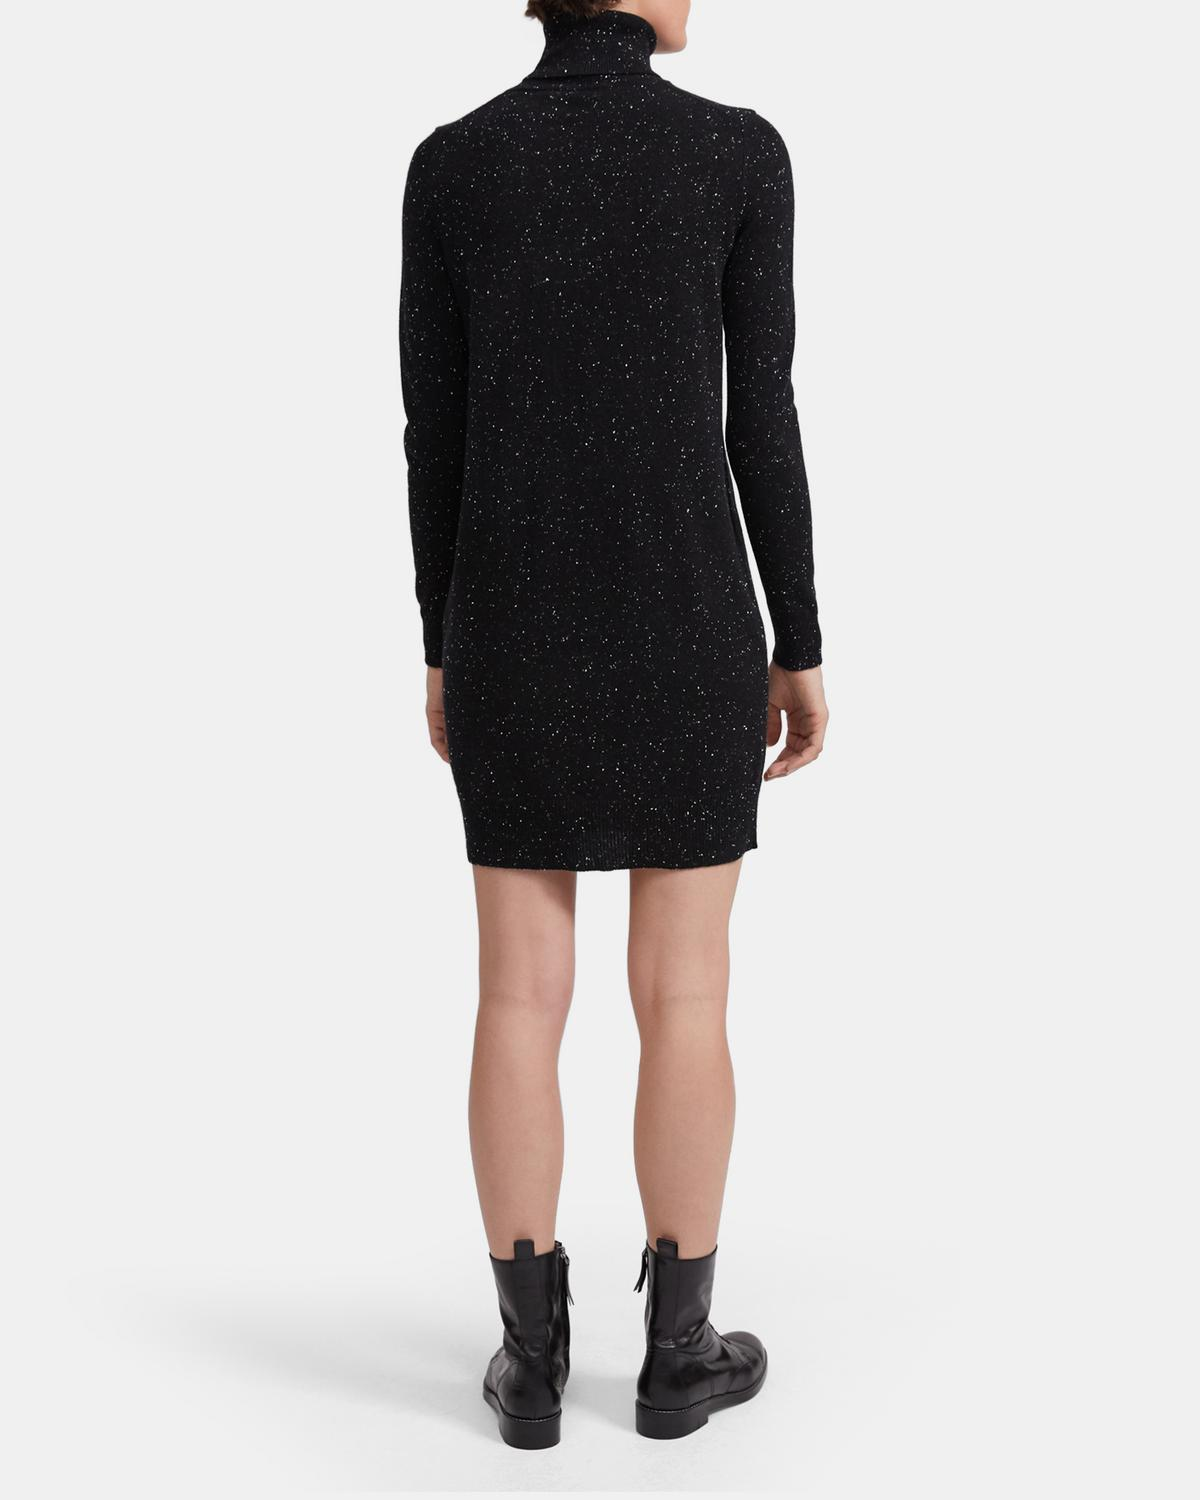 Turtleneck Sweater Dress in Donegal Cashmere